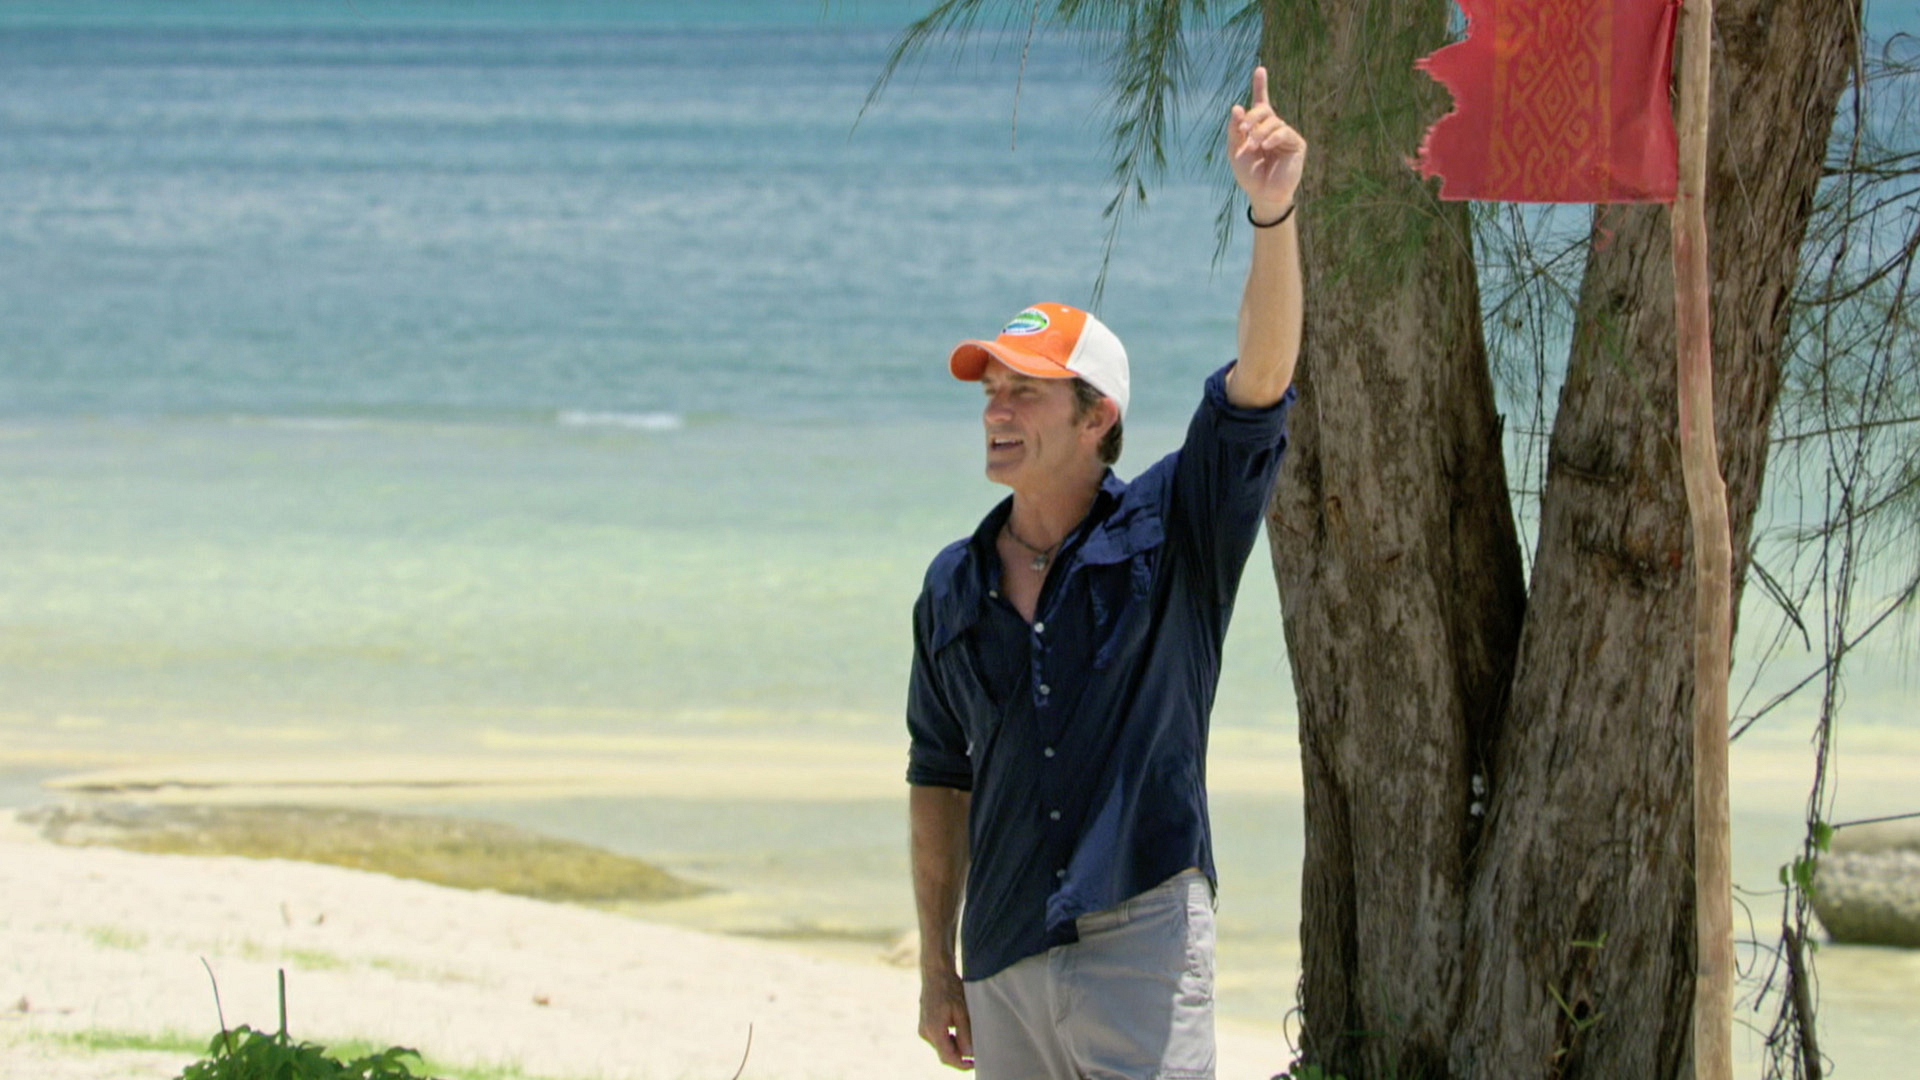 Host Jeff Probst raises his hand so the Final 4 can get on their marks.